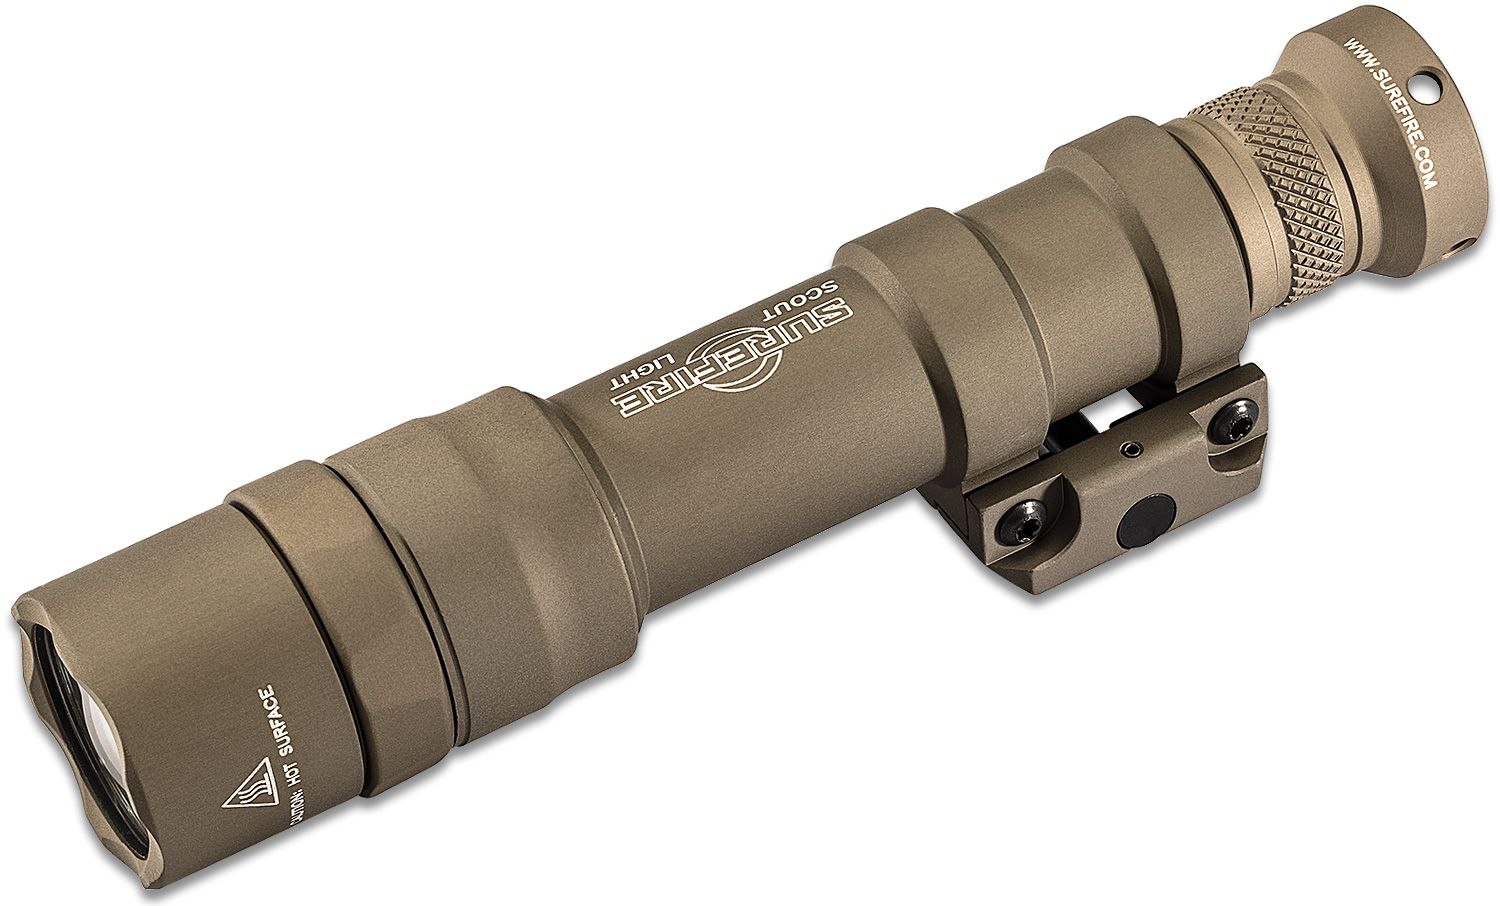 SureFire M600DF Dual Fuel Scout Light LED WeaponLight with M75 Thumb Screw Mount, Tailcap Switch Only, Desert Tan, 1500 Lumens